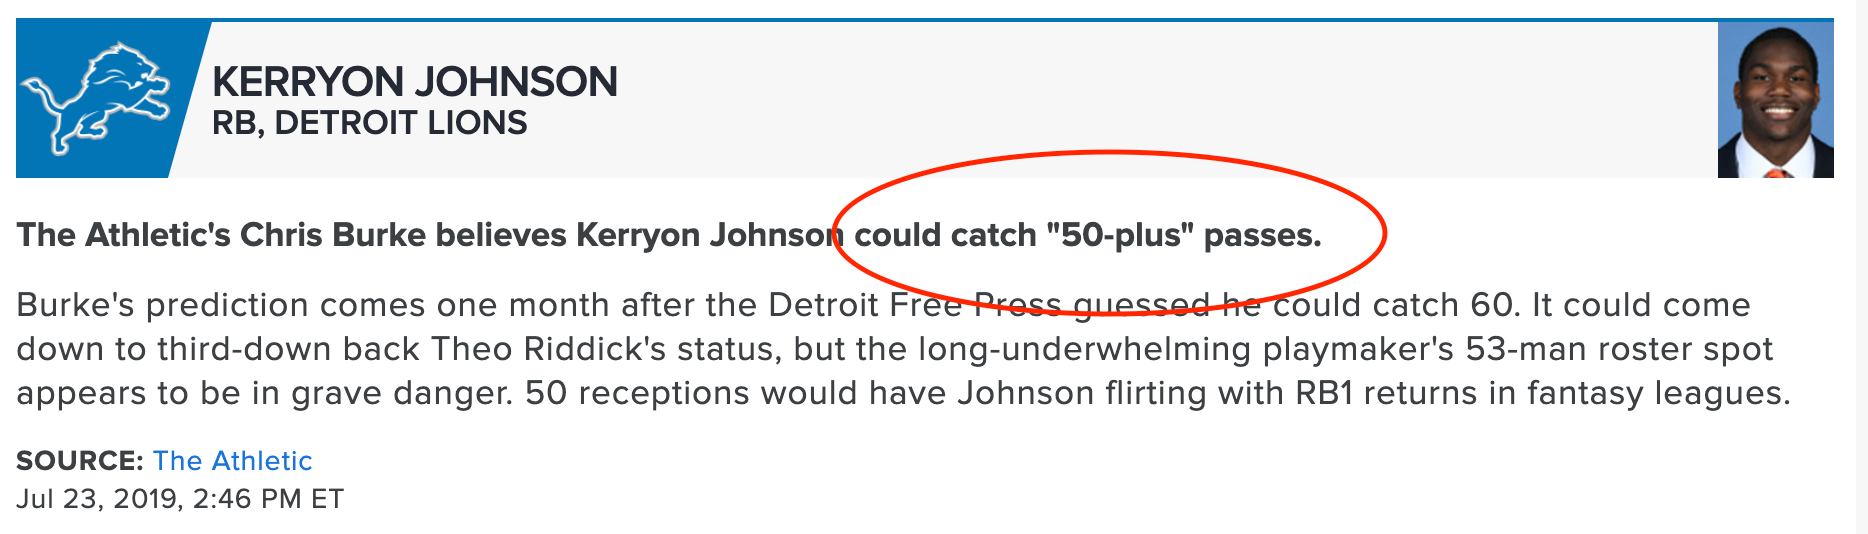 kerryon johnson 2019 fantasy